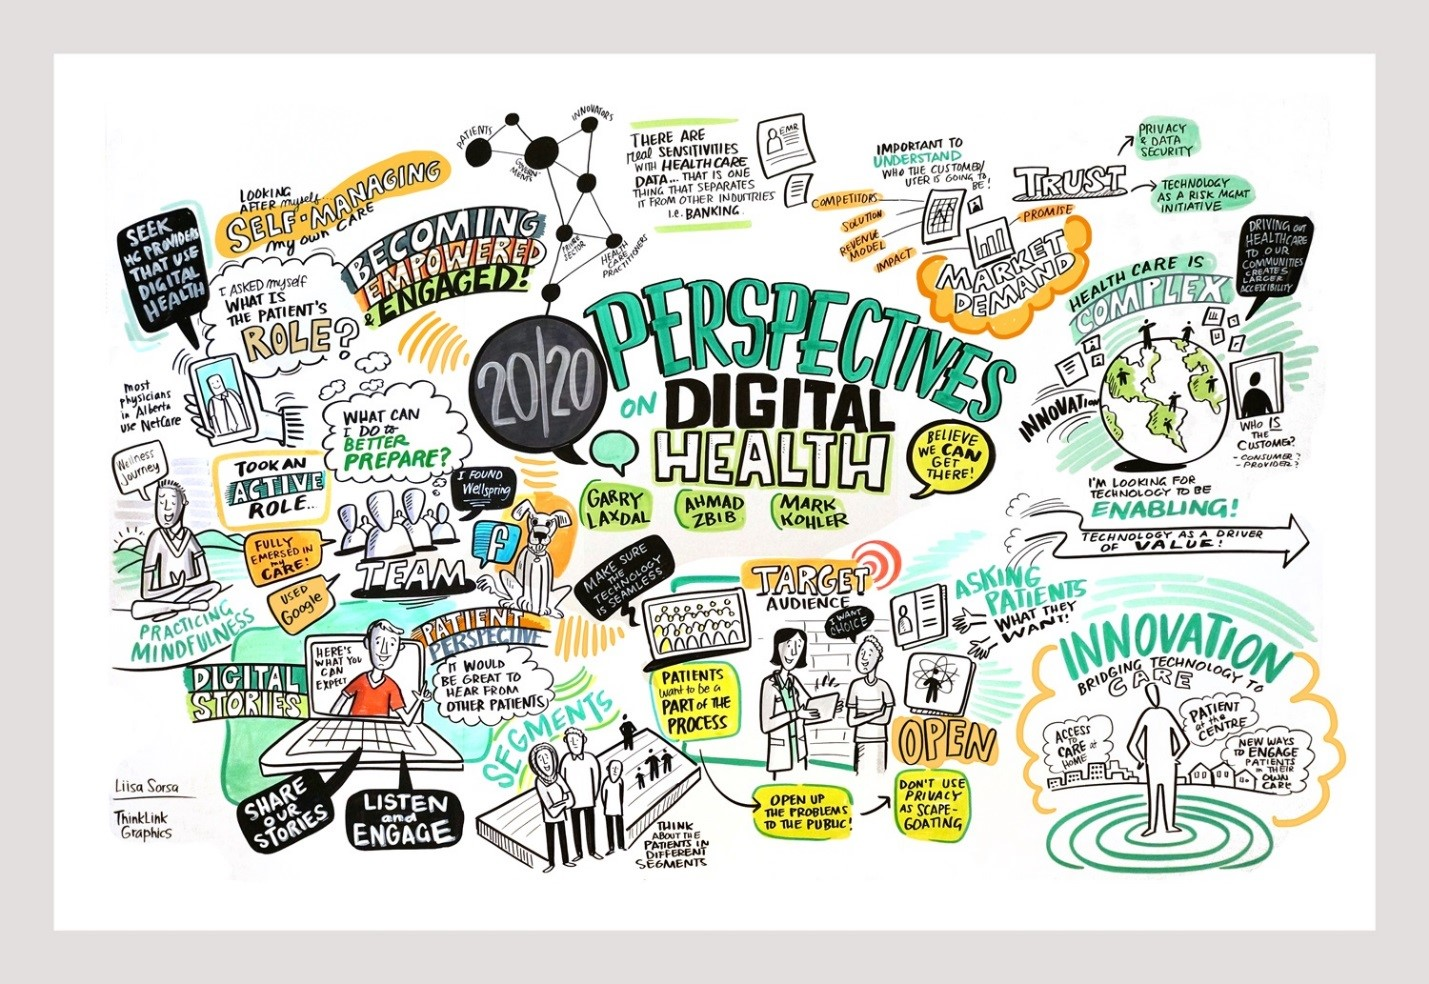 Perspectives on Digital Health